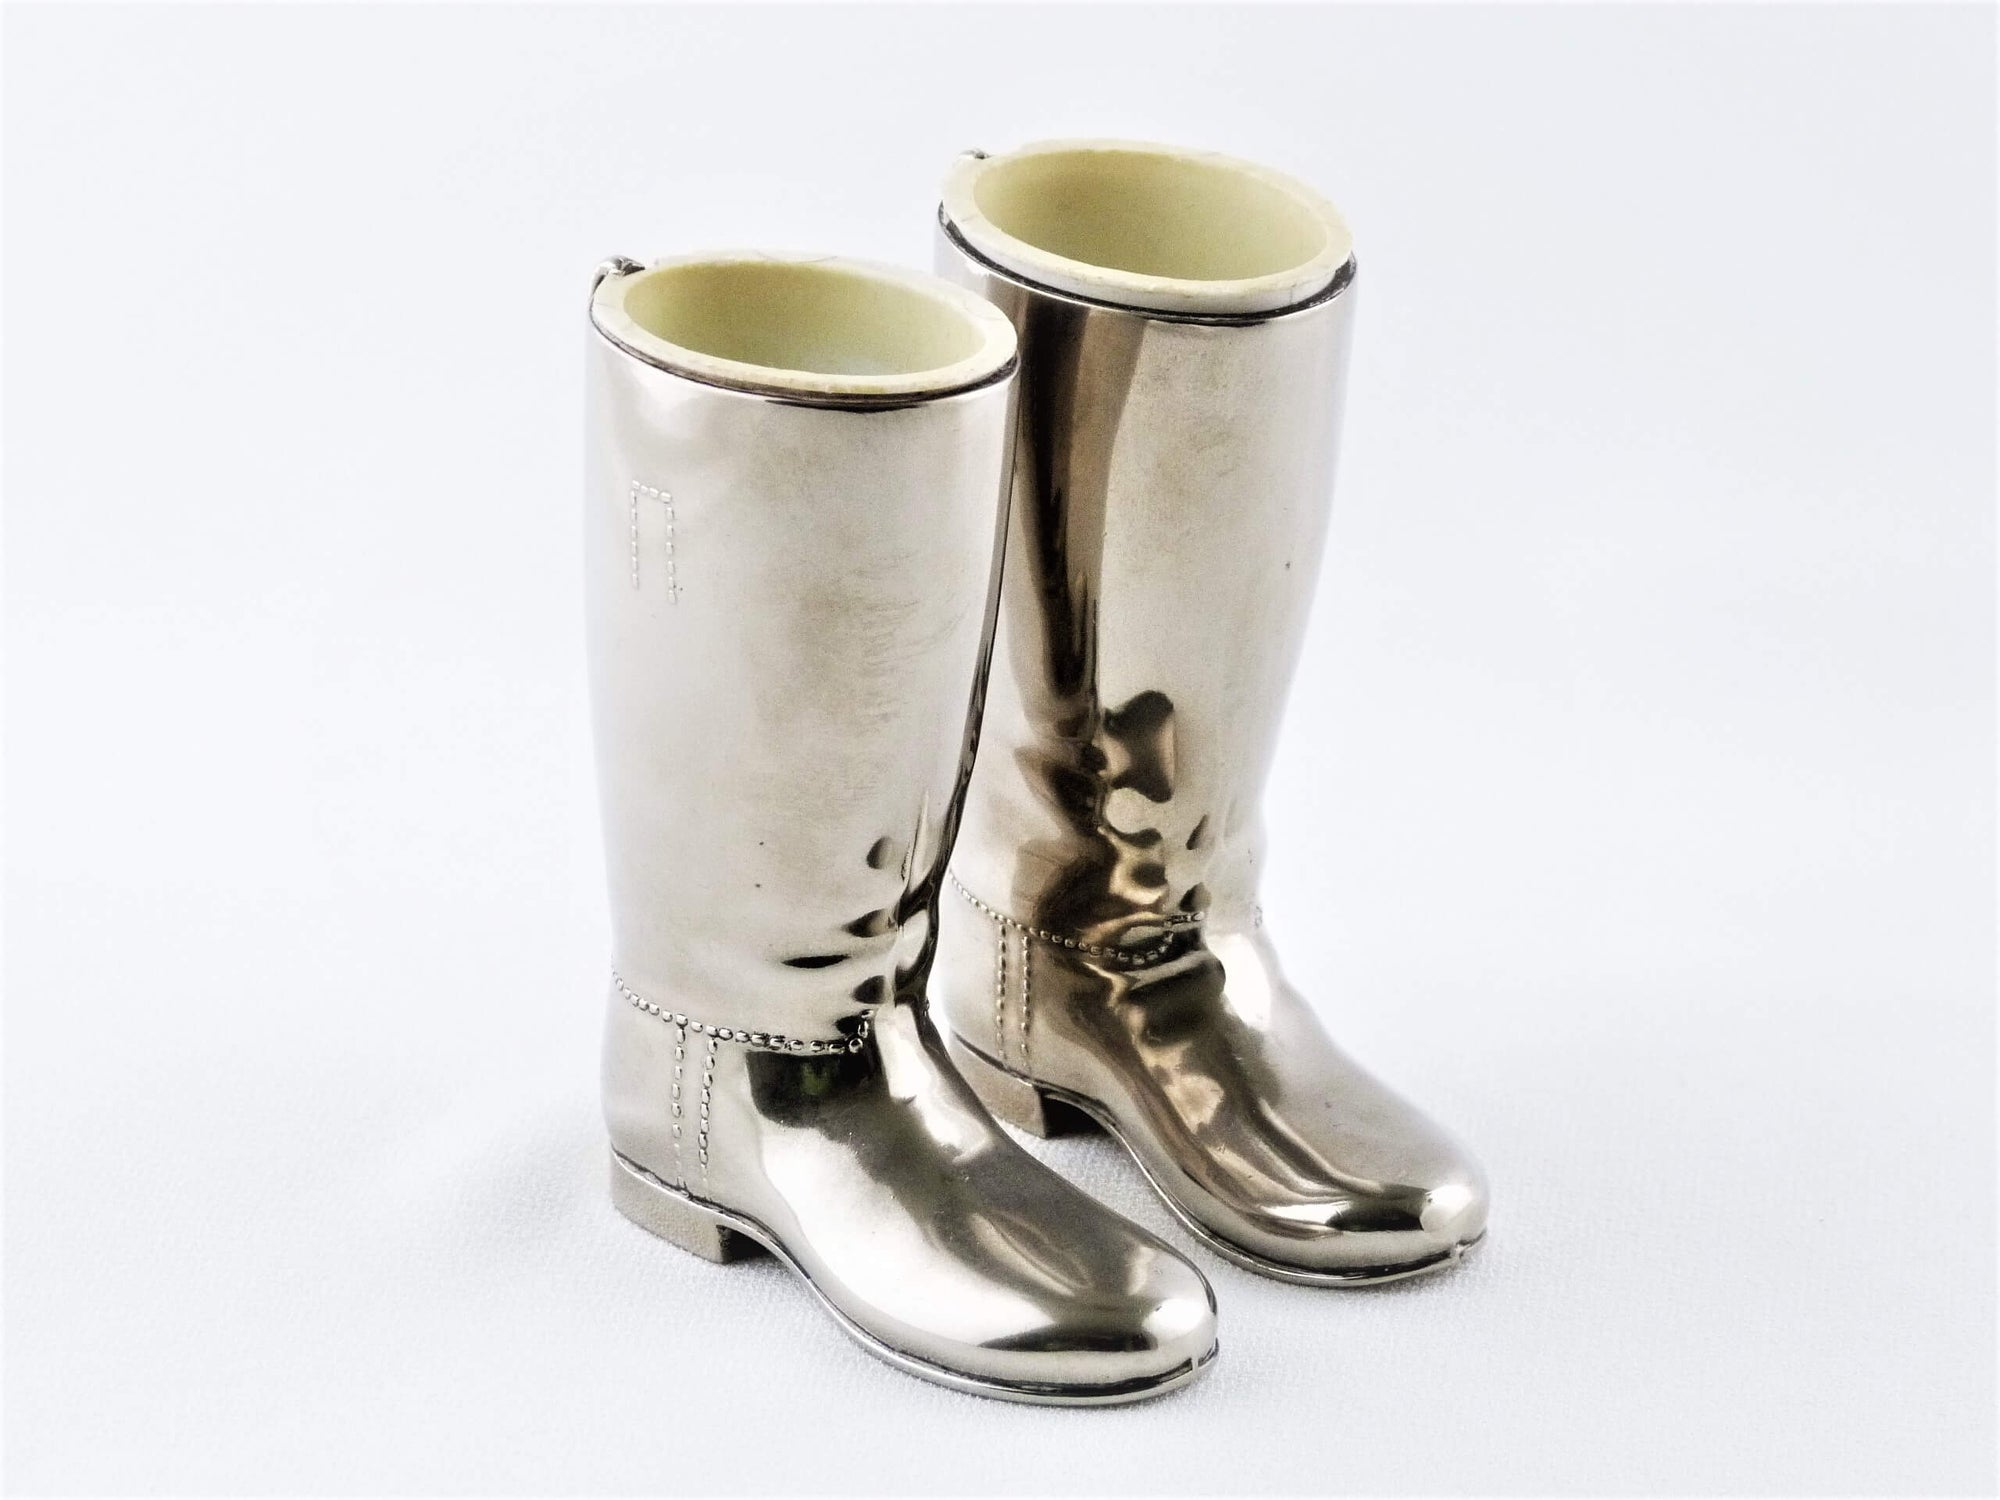 Silver-Plated Spirit Measures, Boot Shaped, Vintage Bar Ware